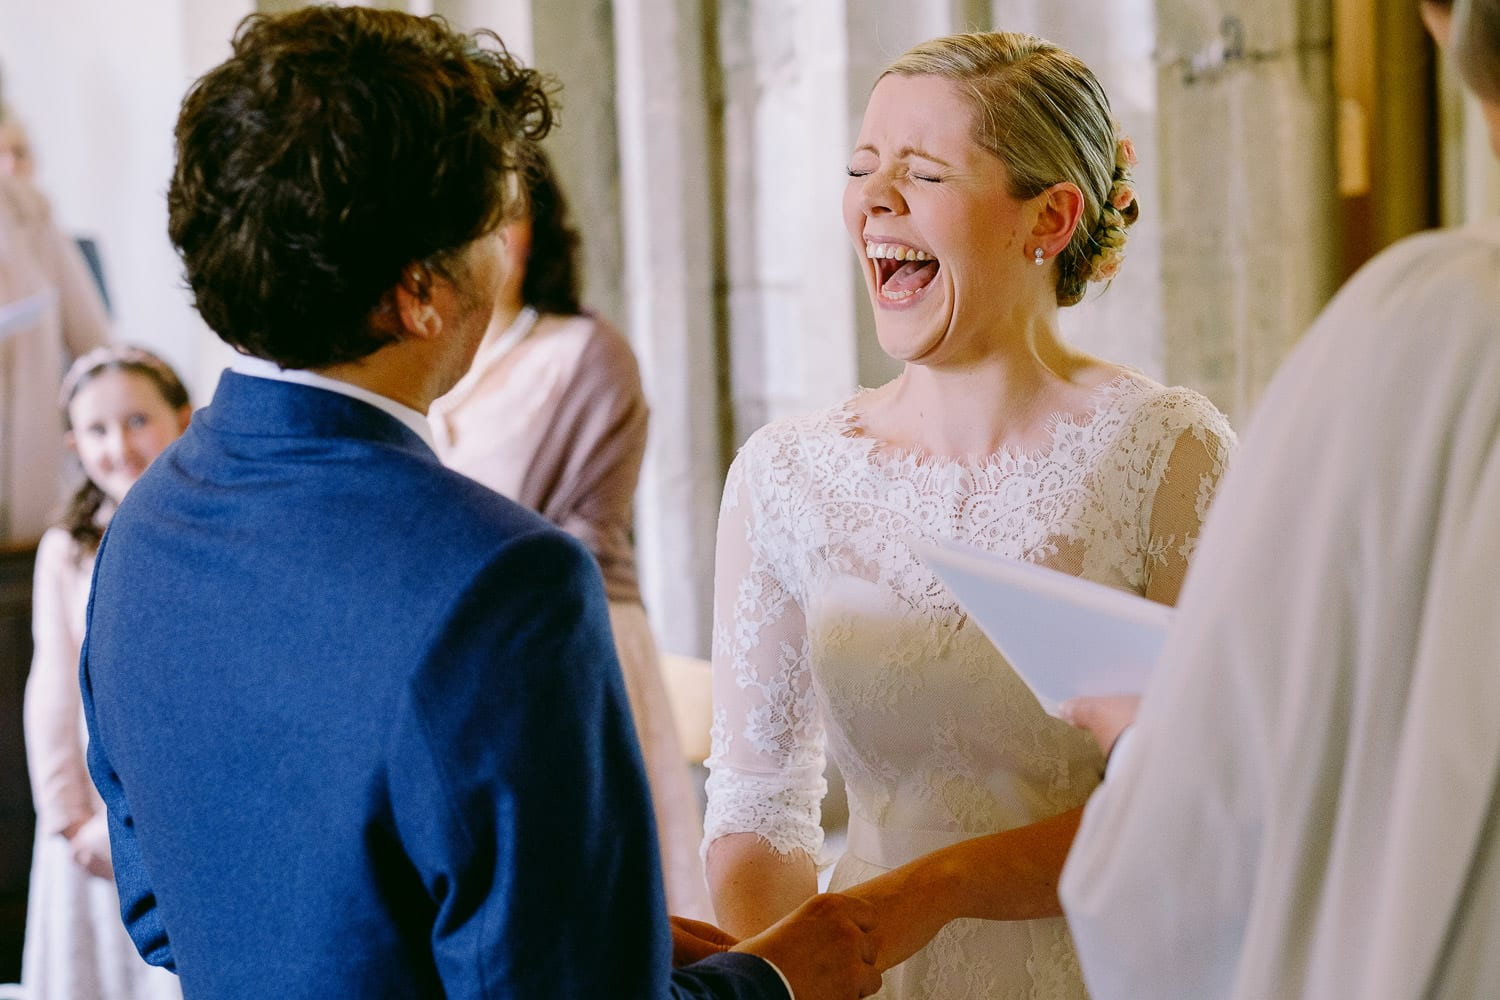 The bride laughing as the groom messes his words